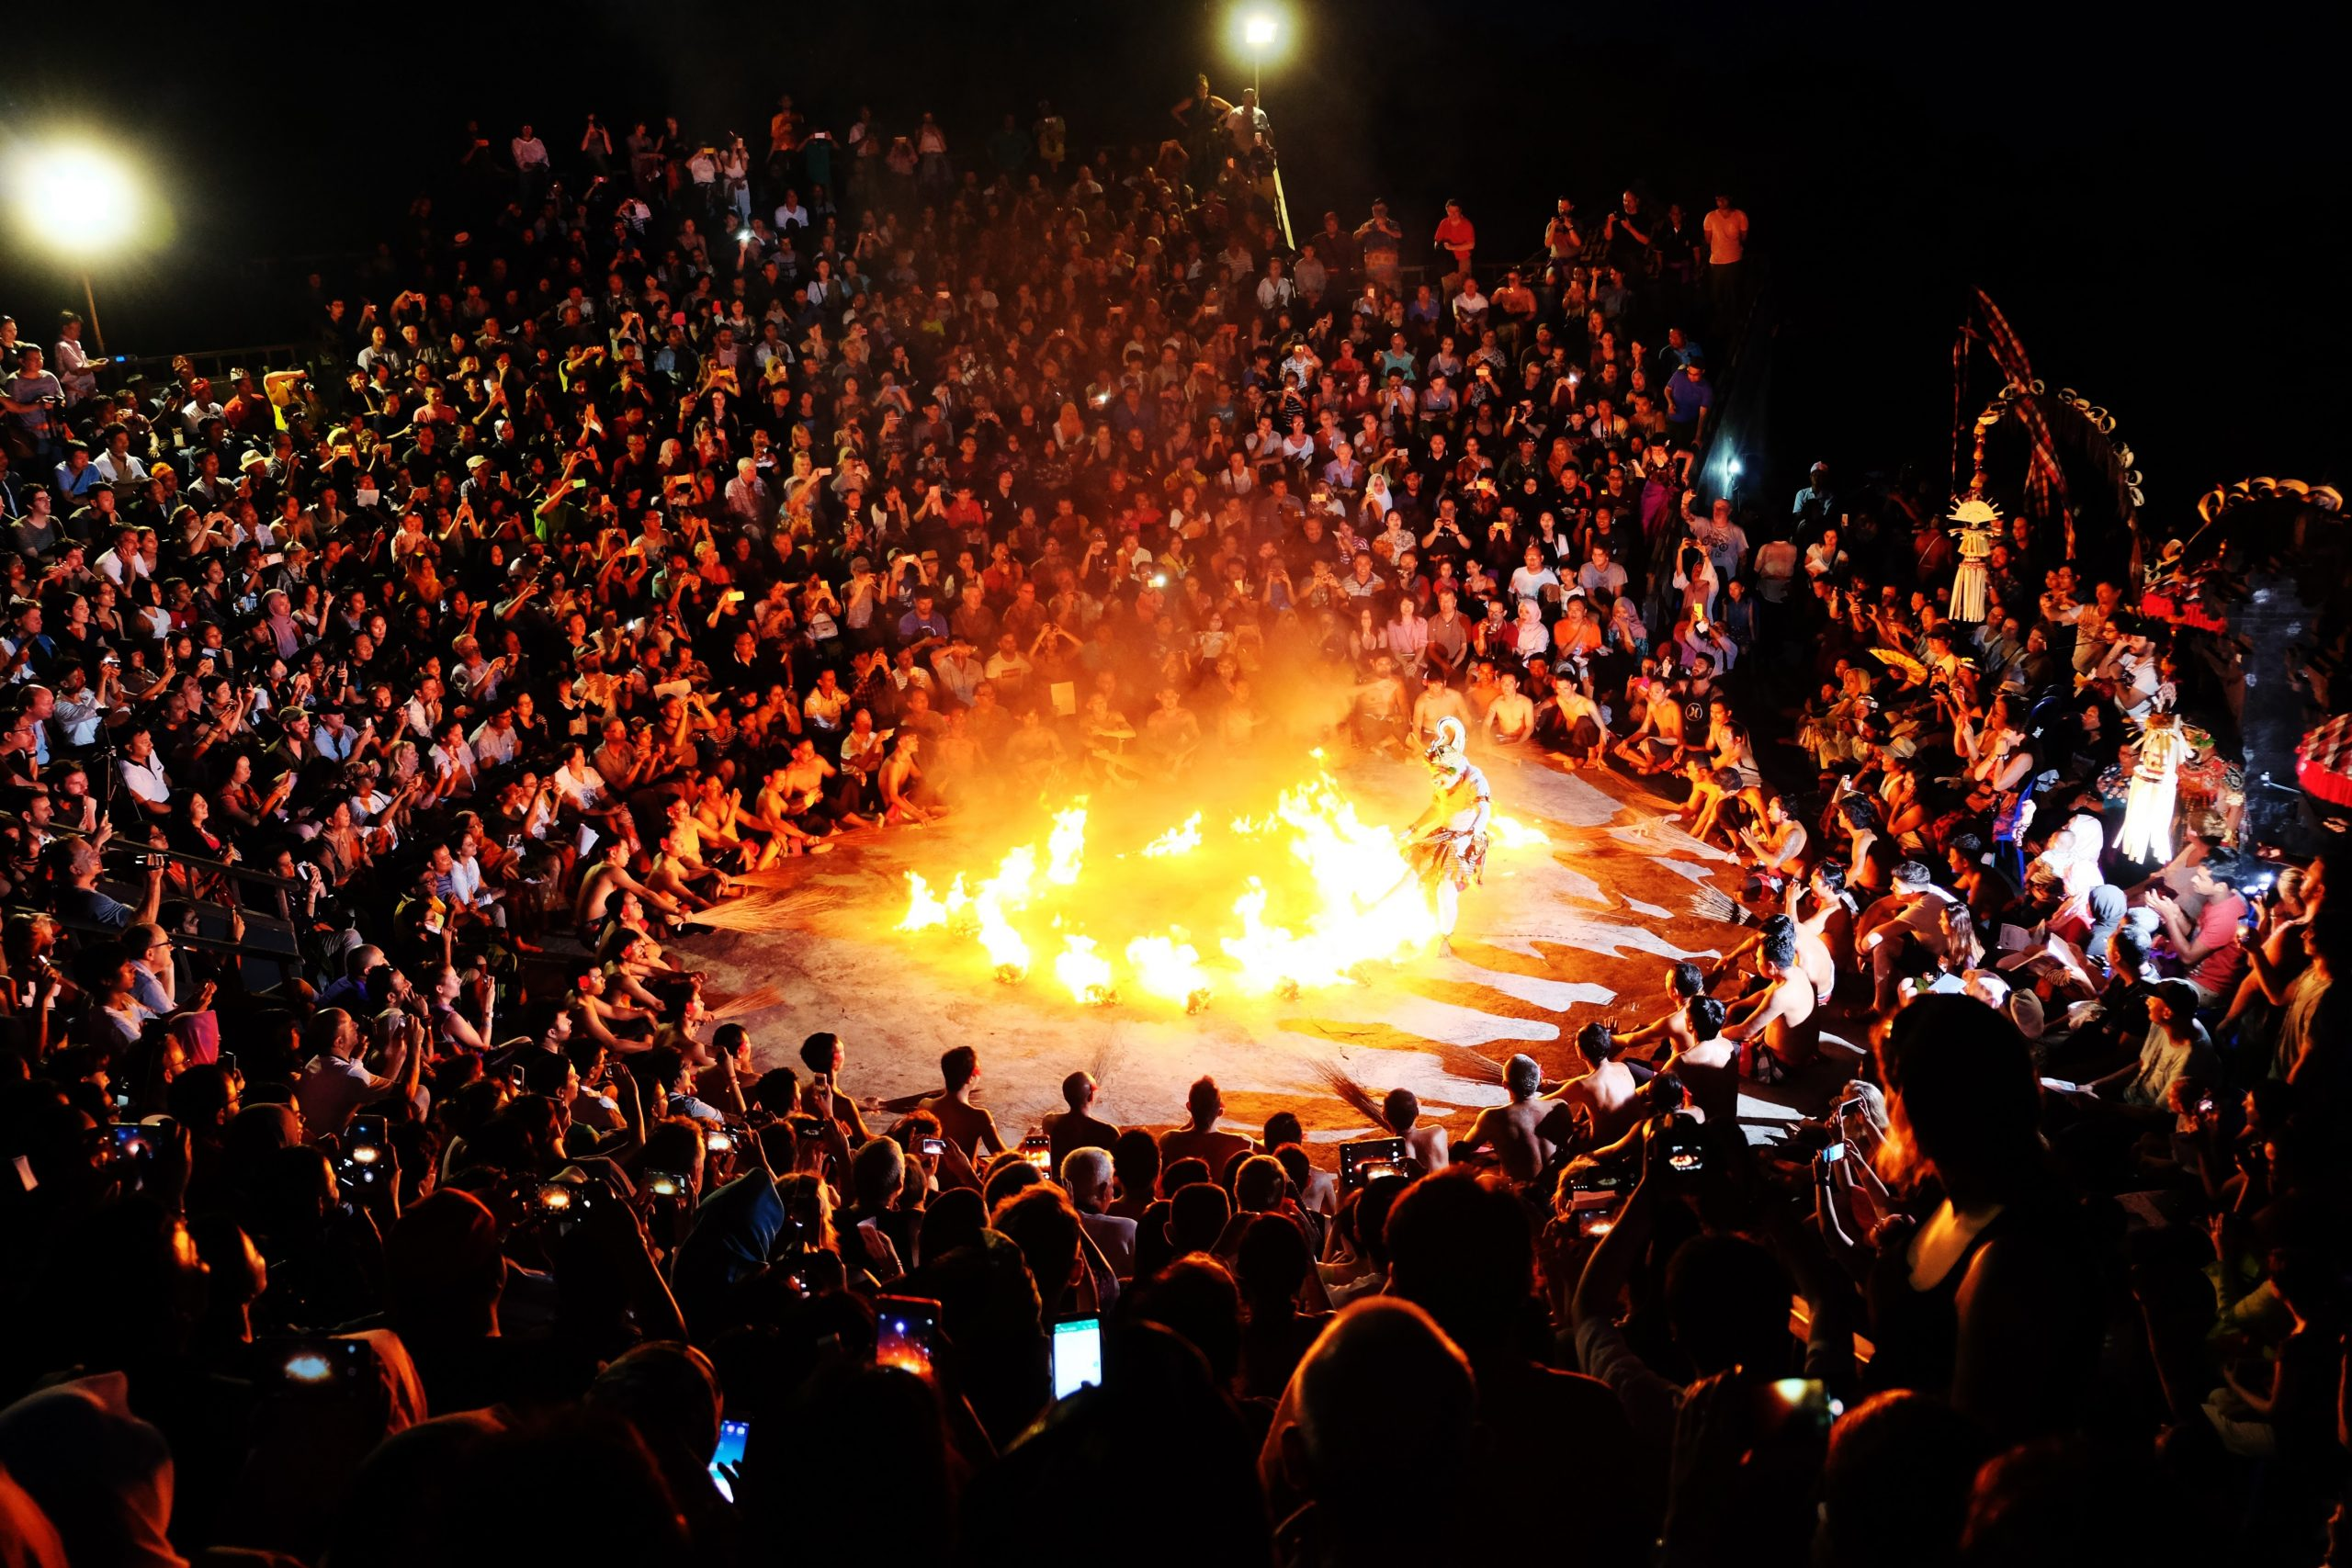 All About Kecak Dance: Origins and Best Places to Watch